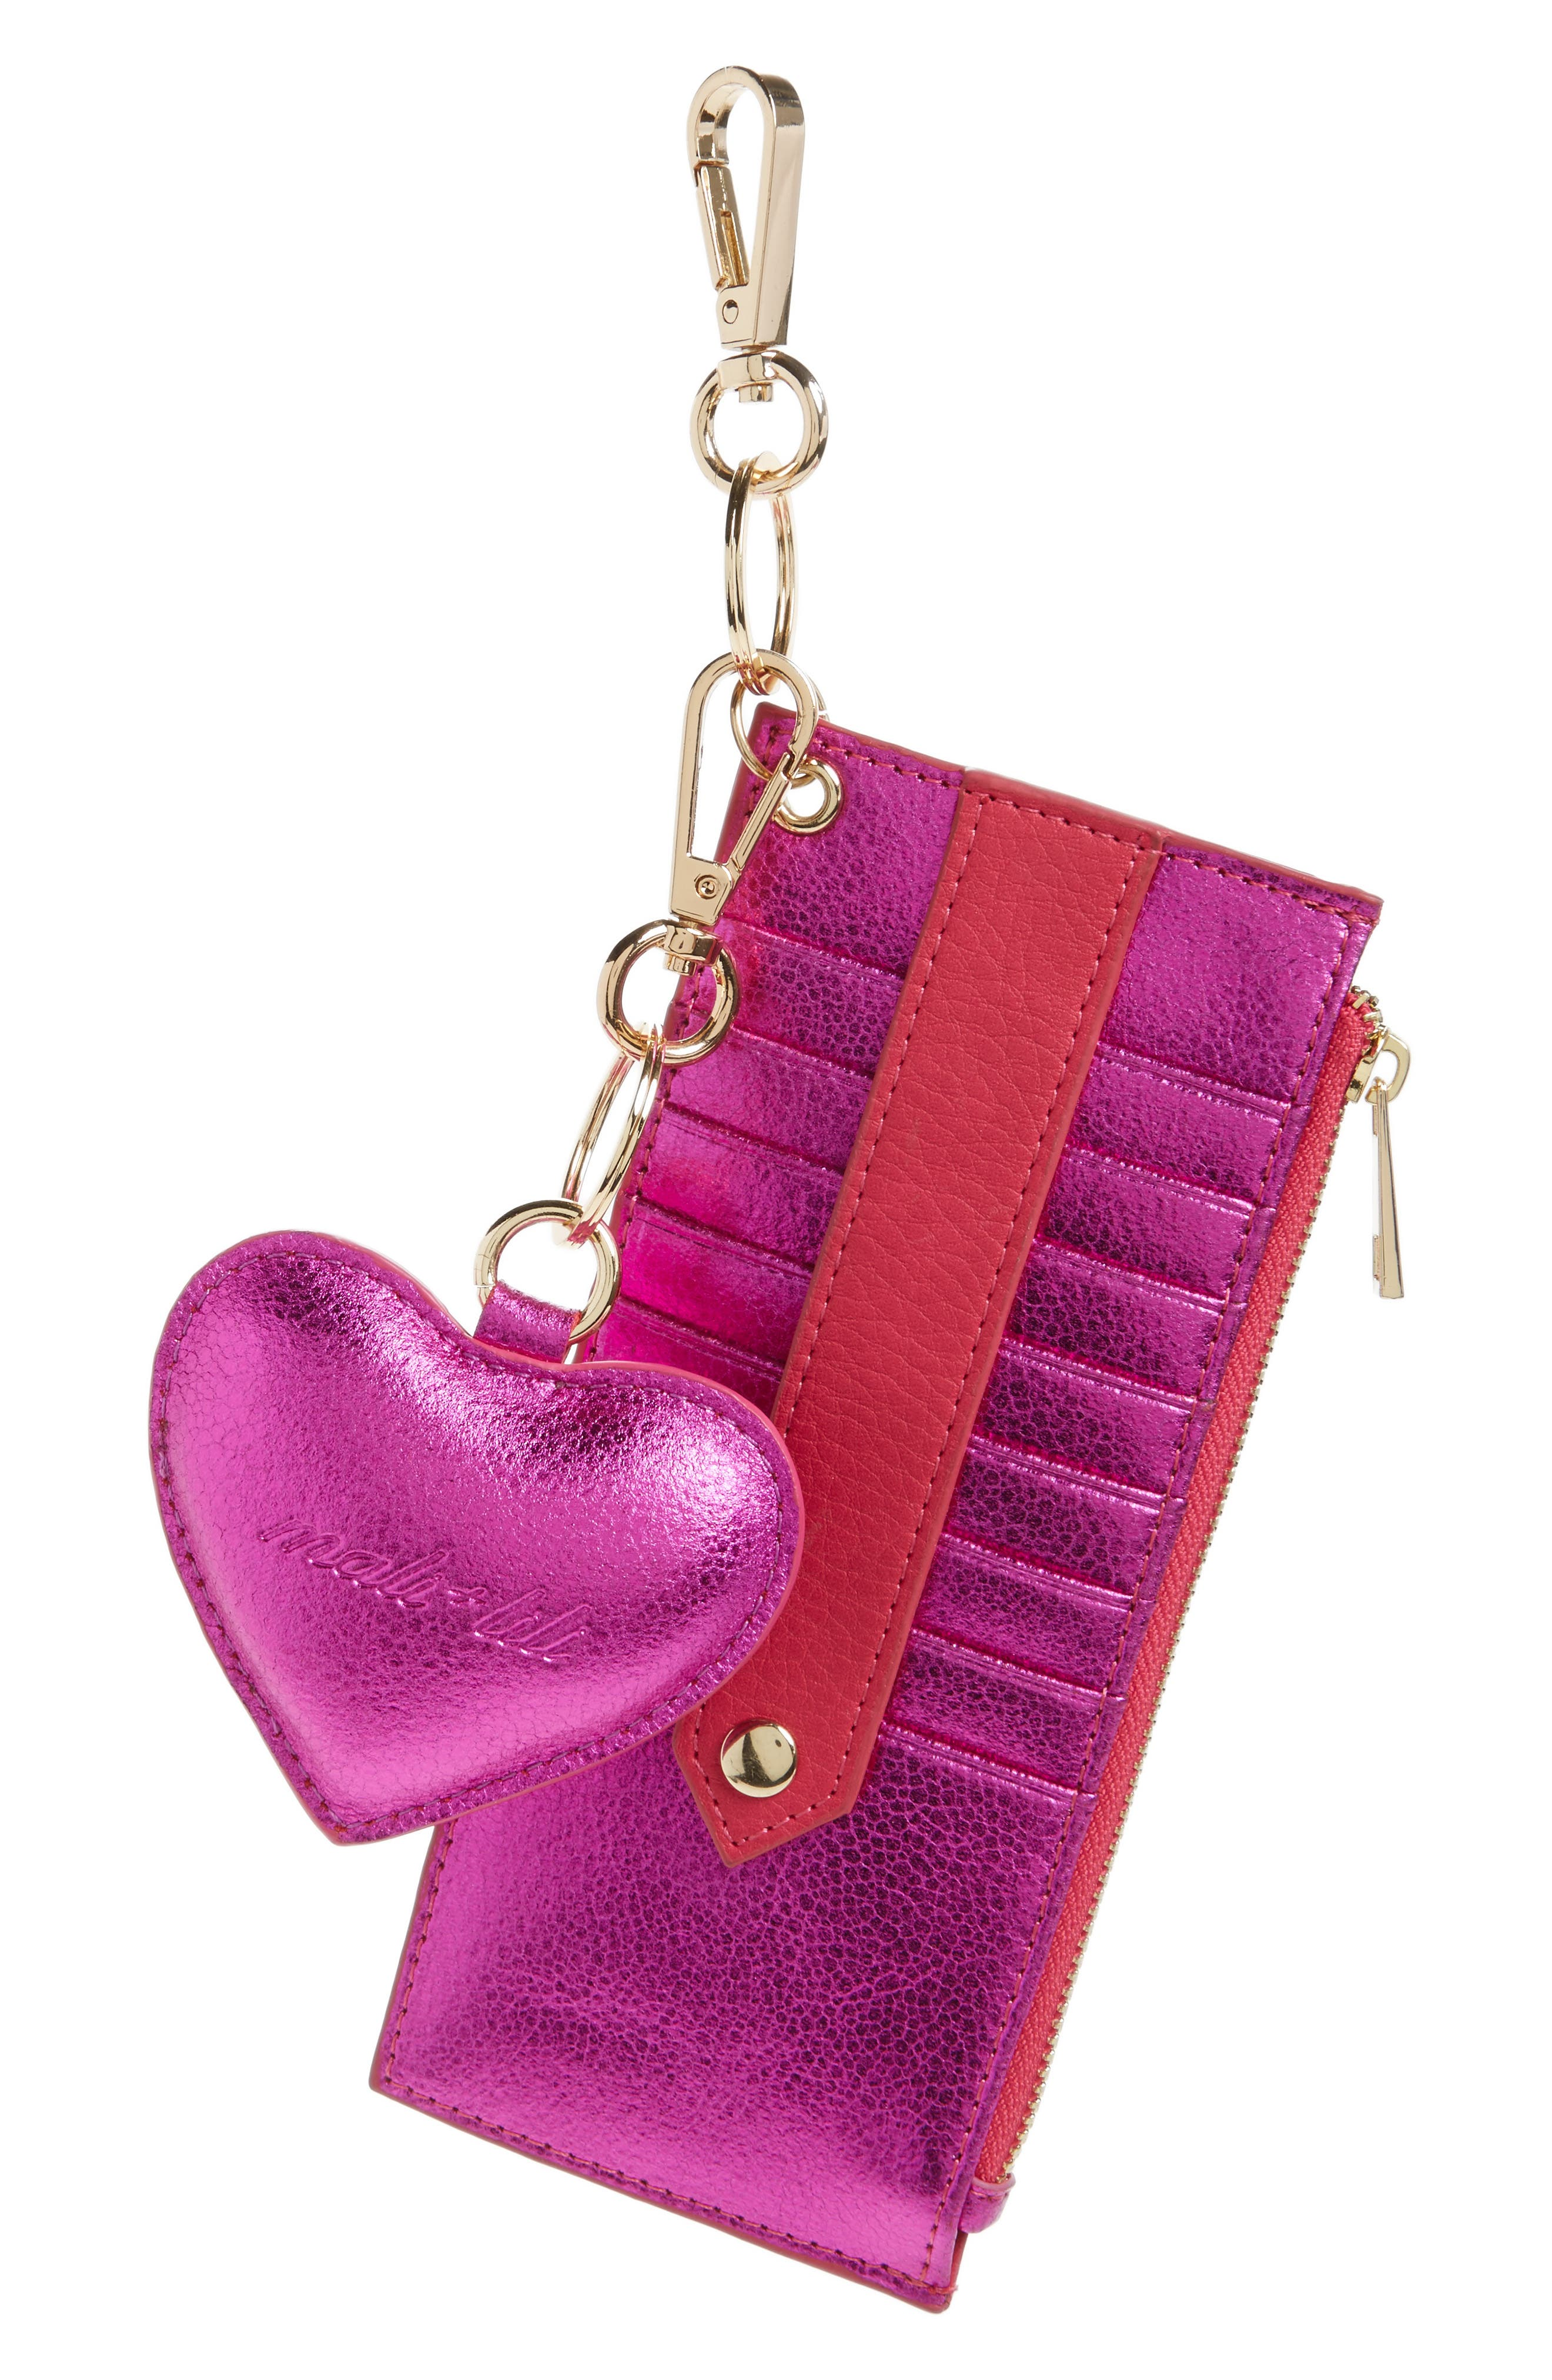 Mali + Lili Sydney Vegan Leather Card Case with Heart Charm,                             Main thumbnail 1, color,                             Hot Pink Metallic